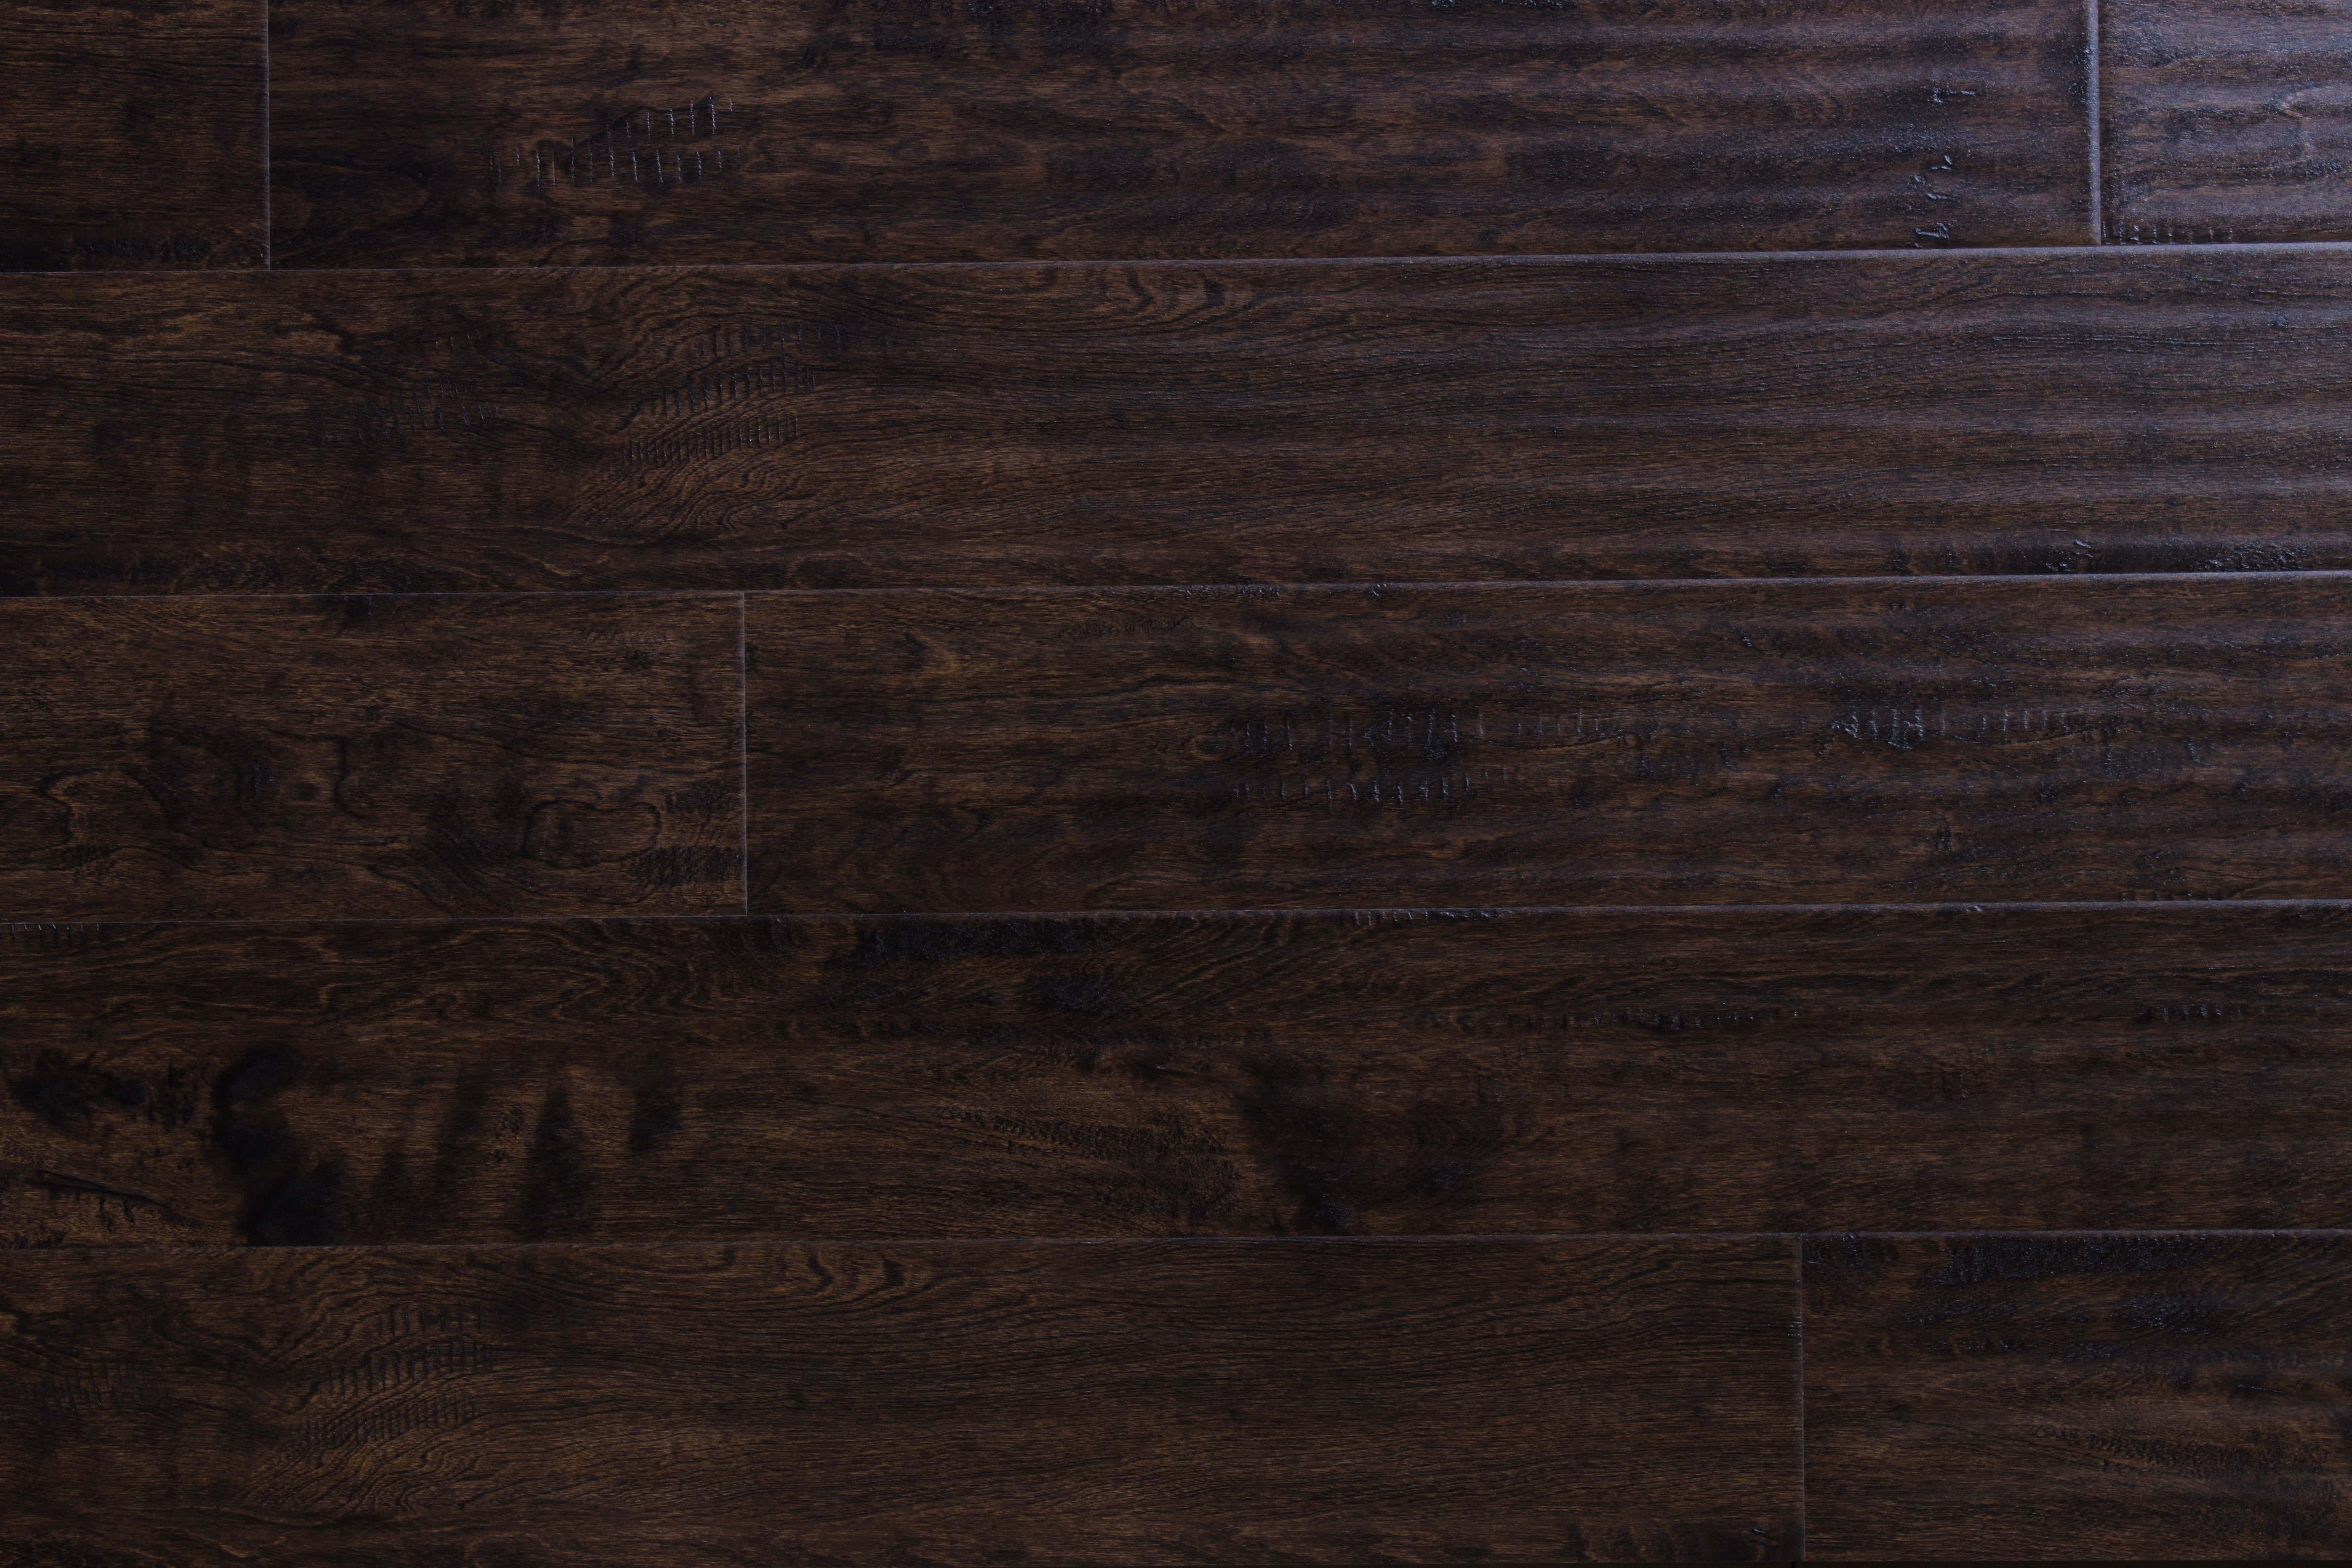 laminate or engineered hardwood flooring which is better of wood flooring free samples available at builddirecta intended for tailor multi gb 5874277bb8d3c